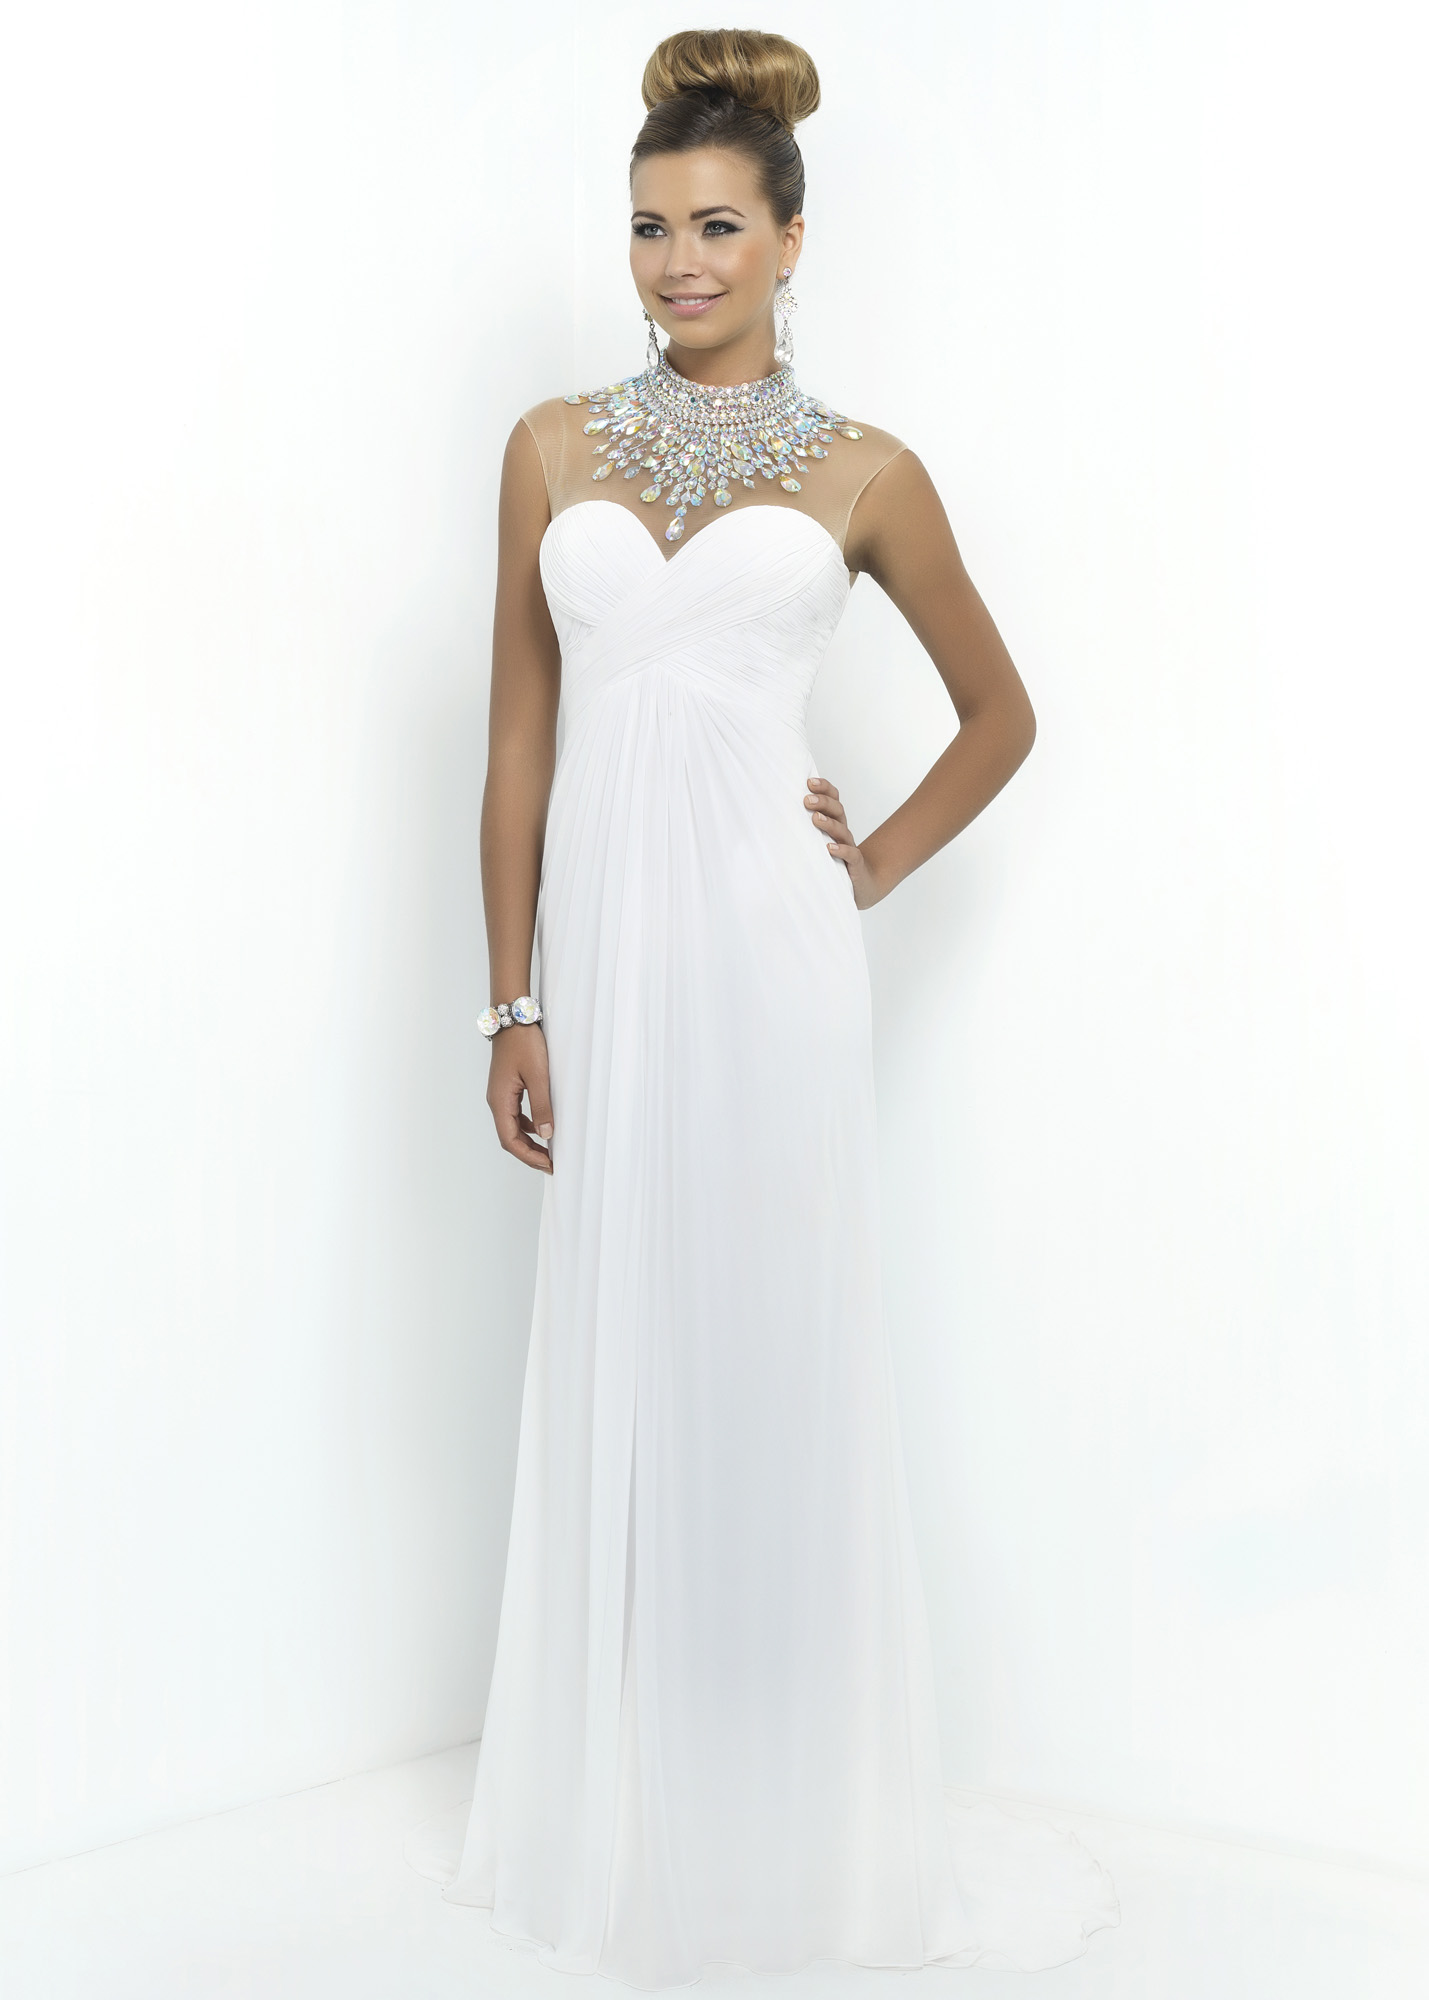 Blush 9952 - White Beaded Illusion Chiffon Prom Dress - RissyRoos.com